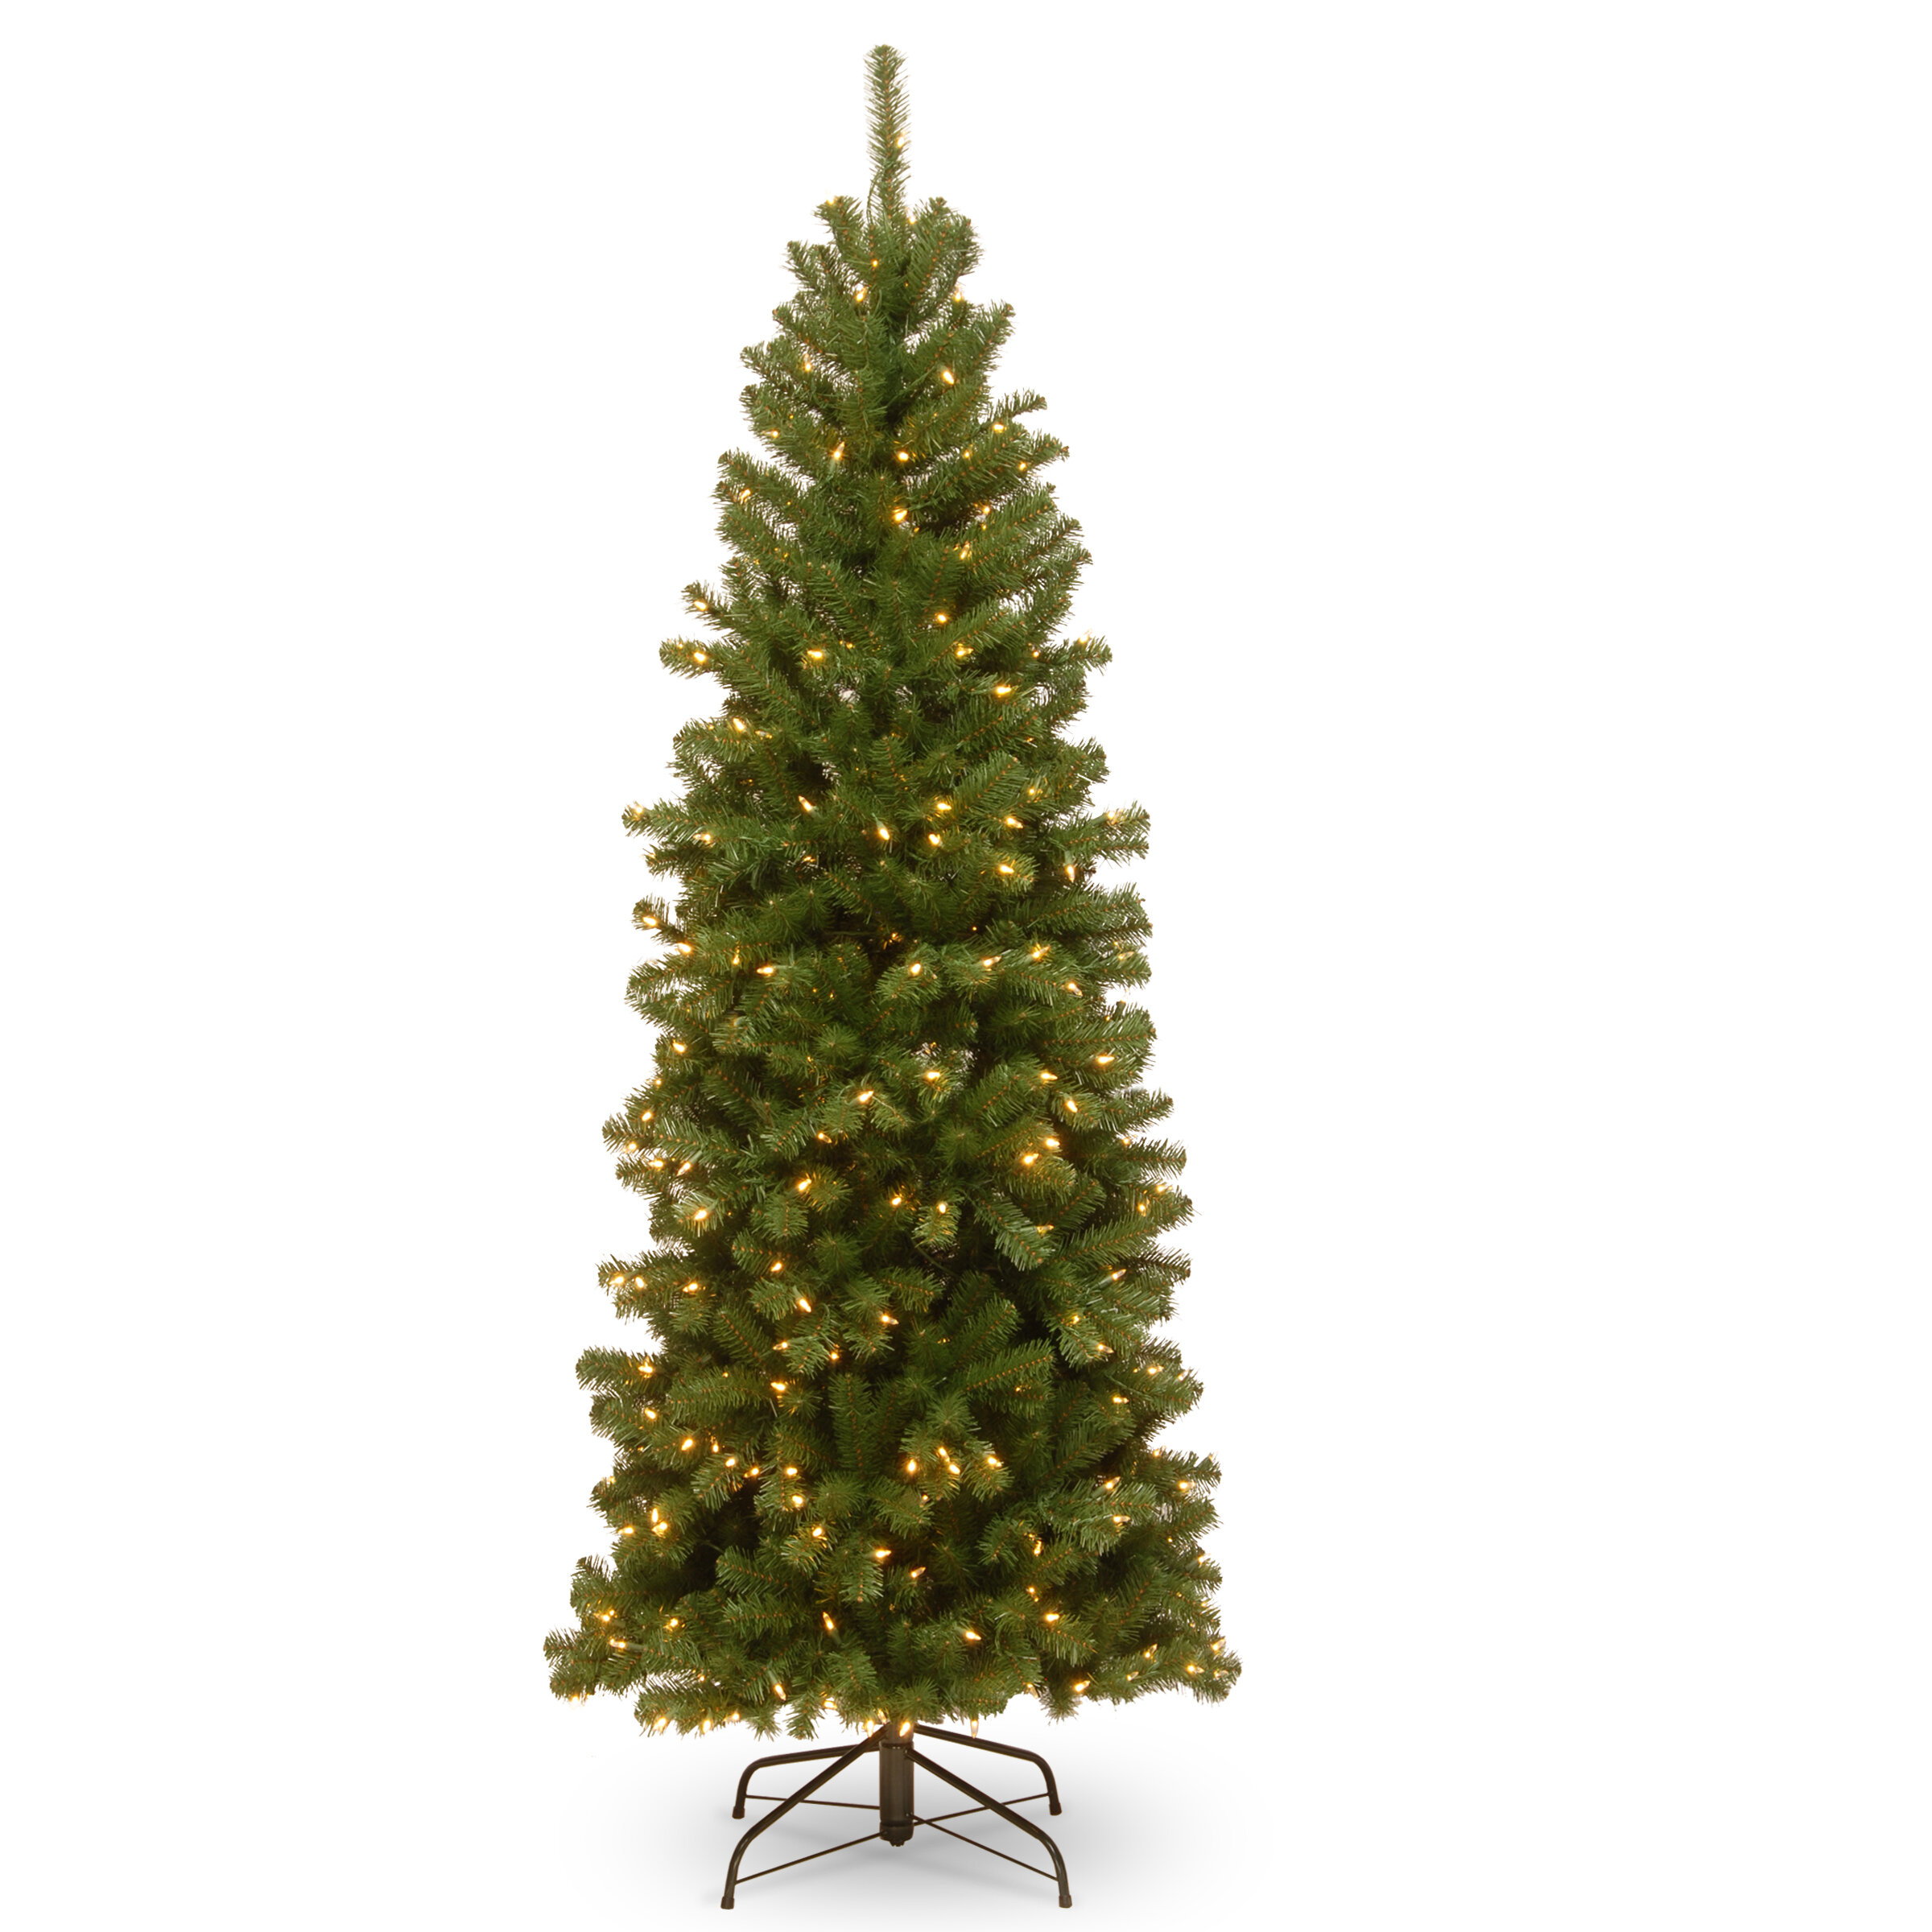 North Valley Pencil Green Spruce Trees Artificial Christmas Tree & Reviews    Joss & Main